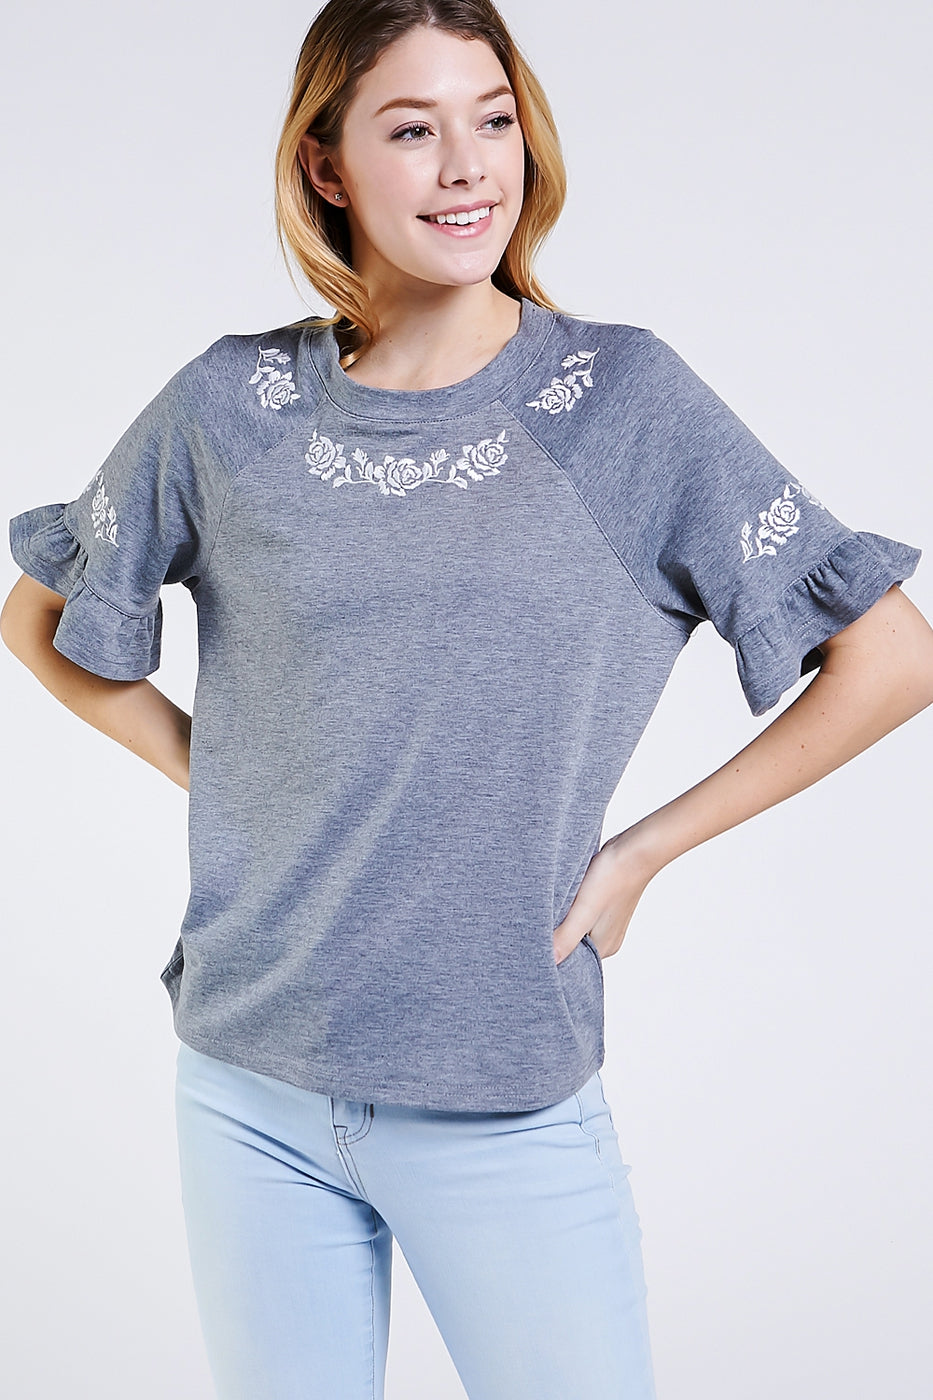 Stylish Knit Top Short Sleeve With Floral Embroidery Siin Bees